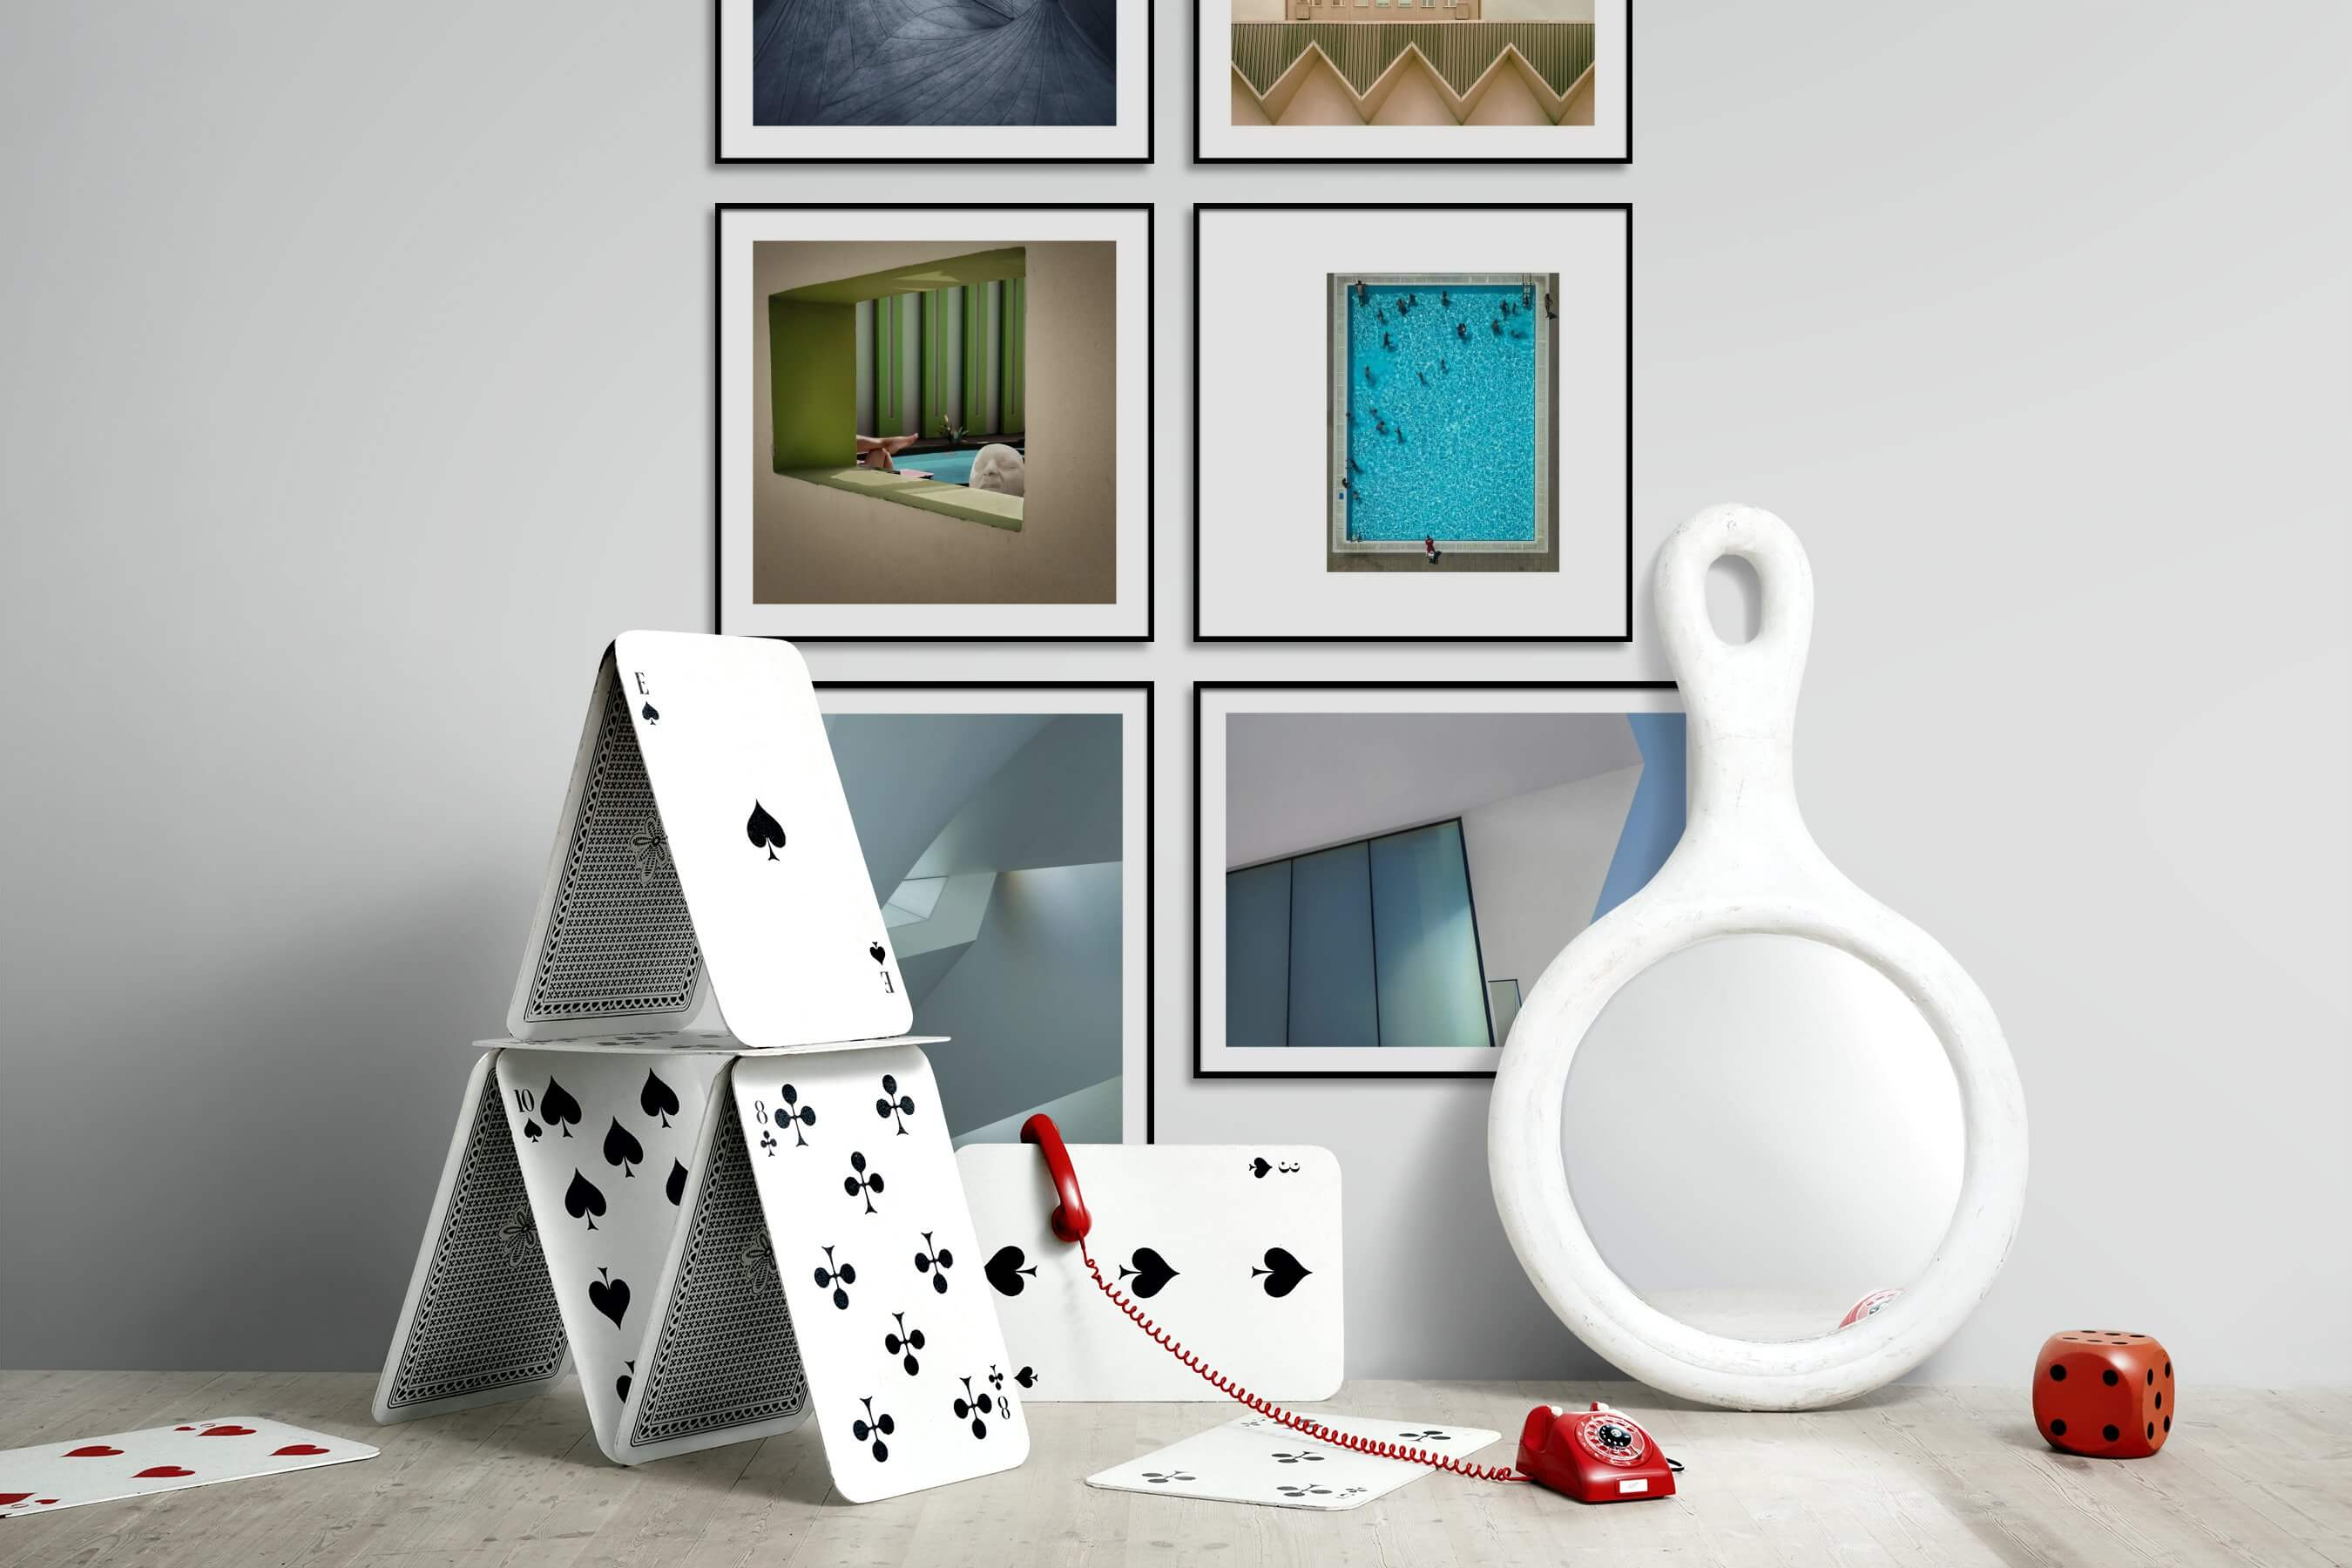 Gallery wall idea with six framed pictures arranged on a wall depicting Black & White, For the Moderate, City Life, Artsy, and Beach & Water